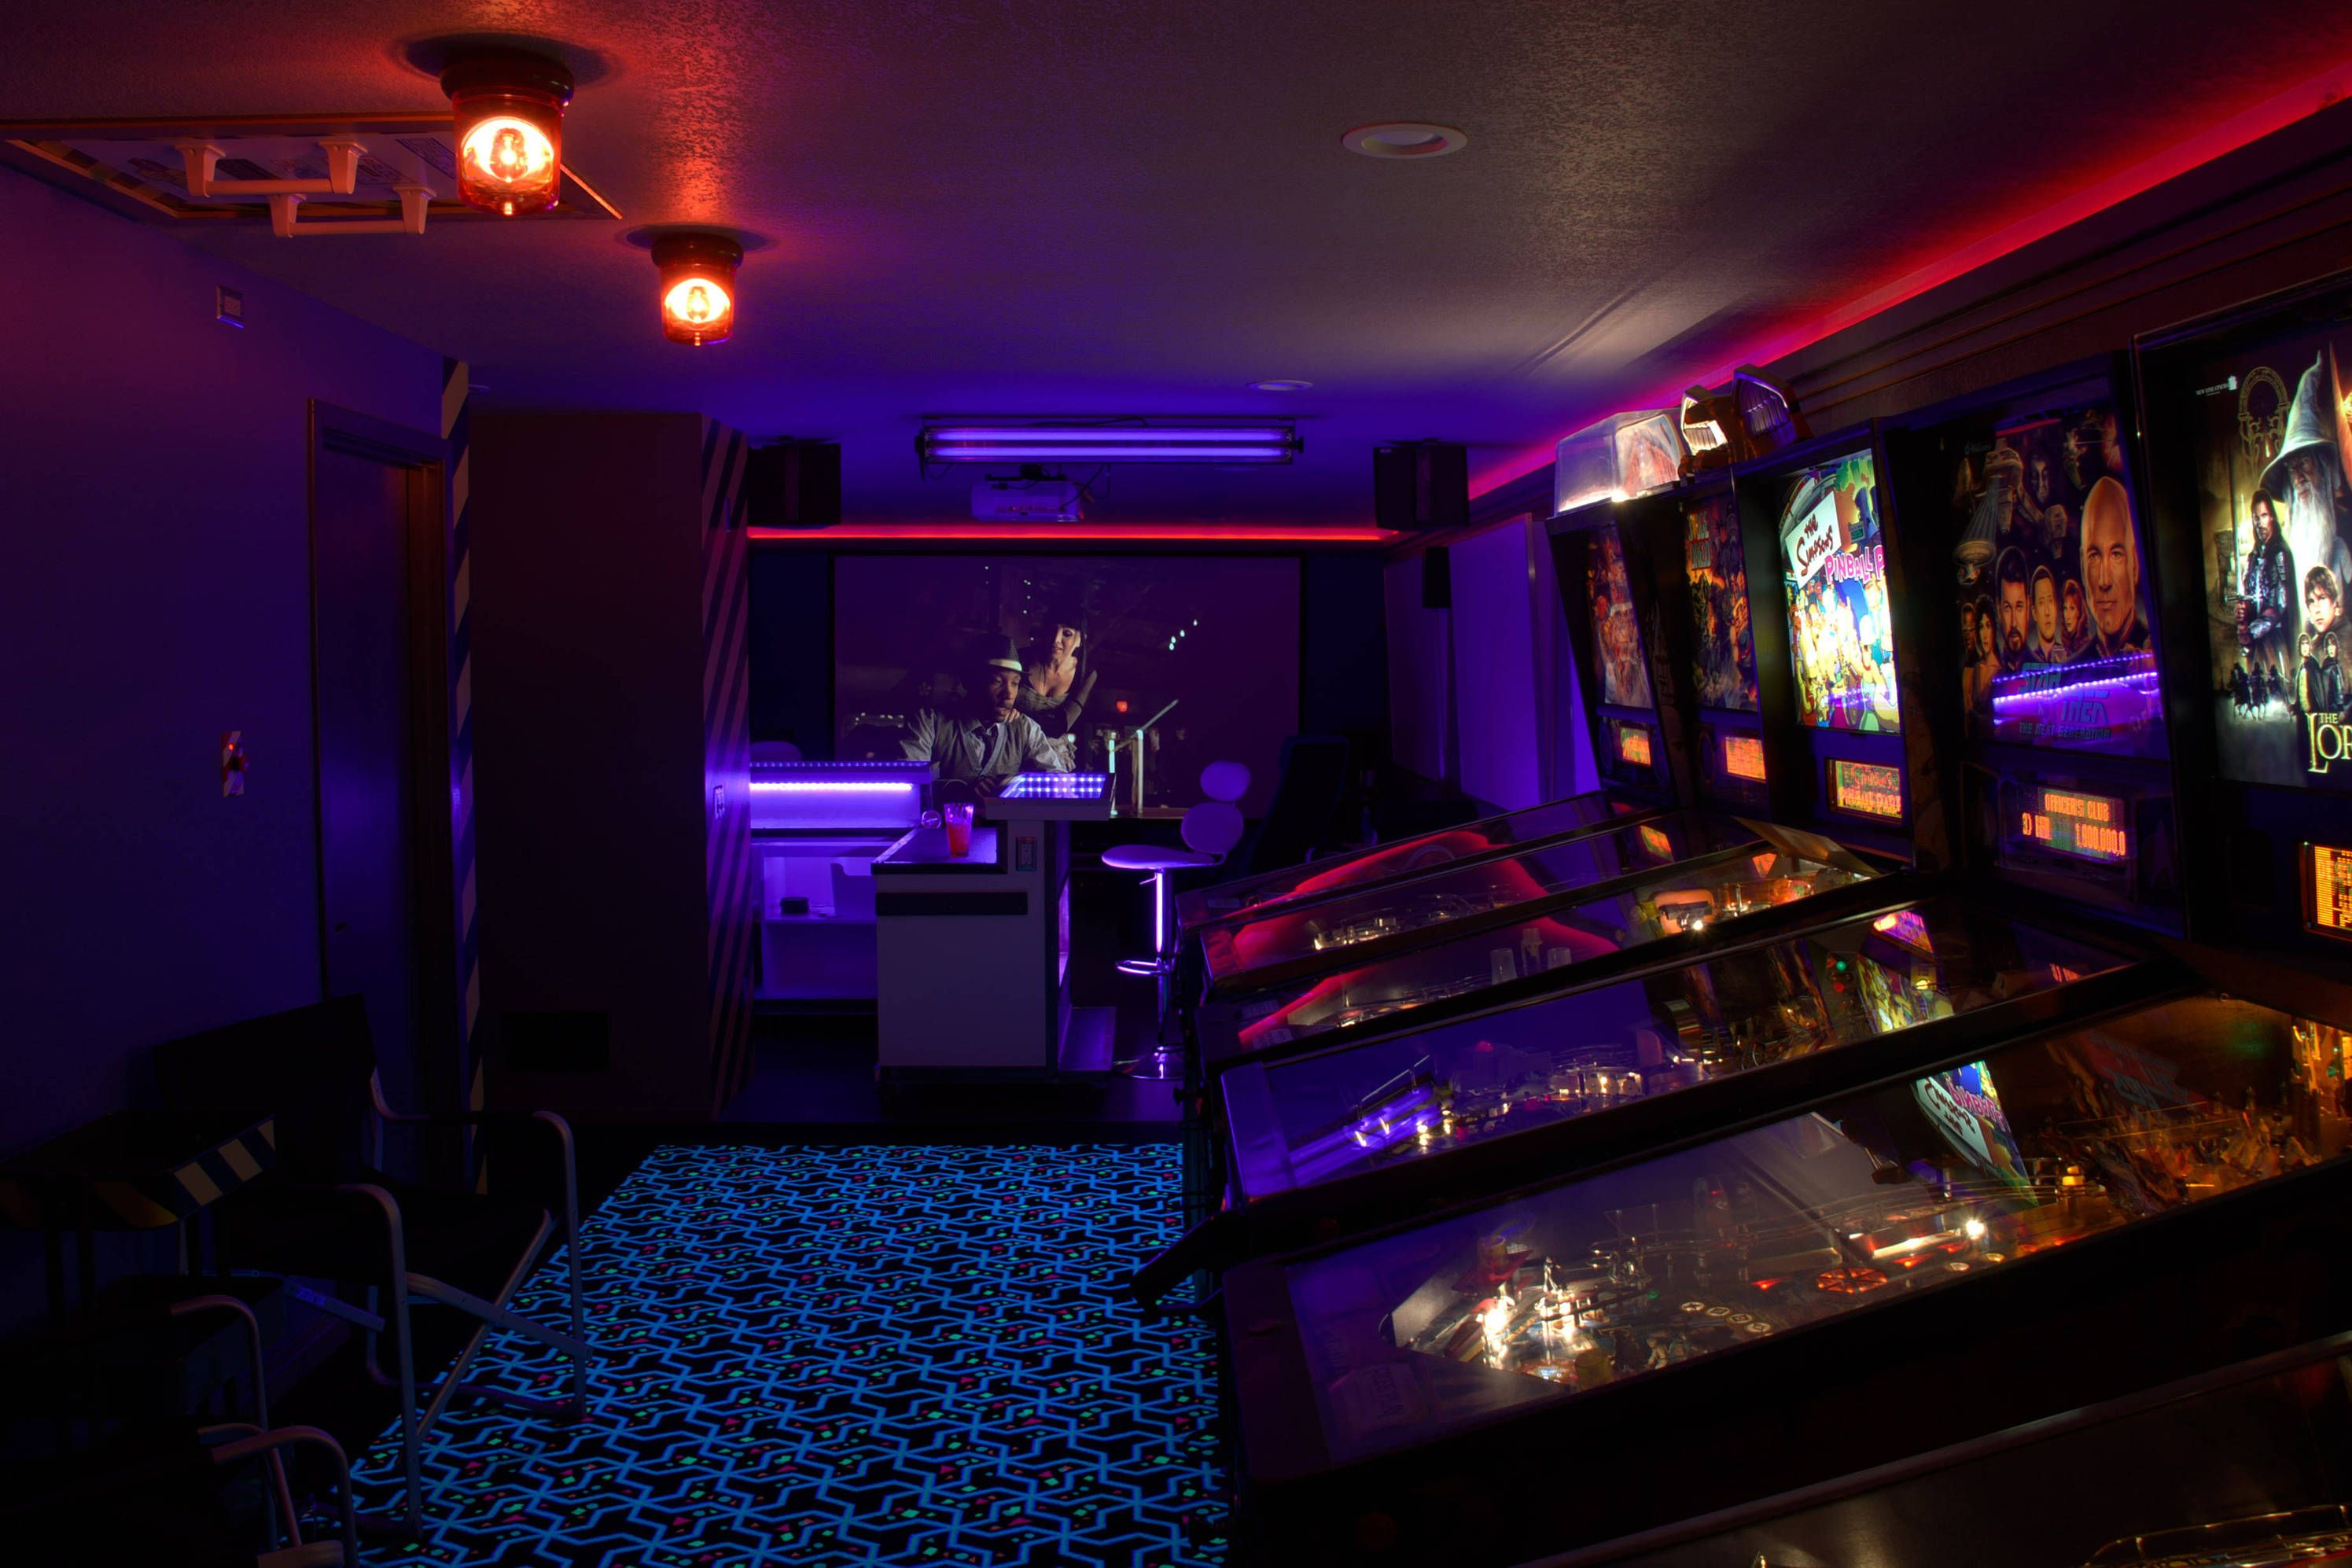 Sci fi themed arcade game room bar and theater by Reddit user